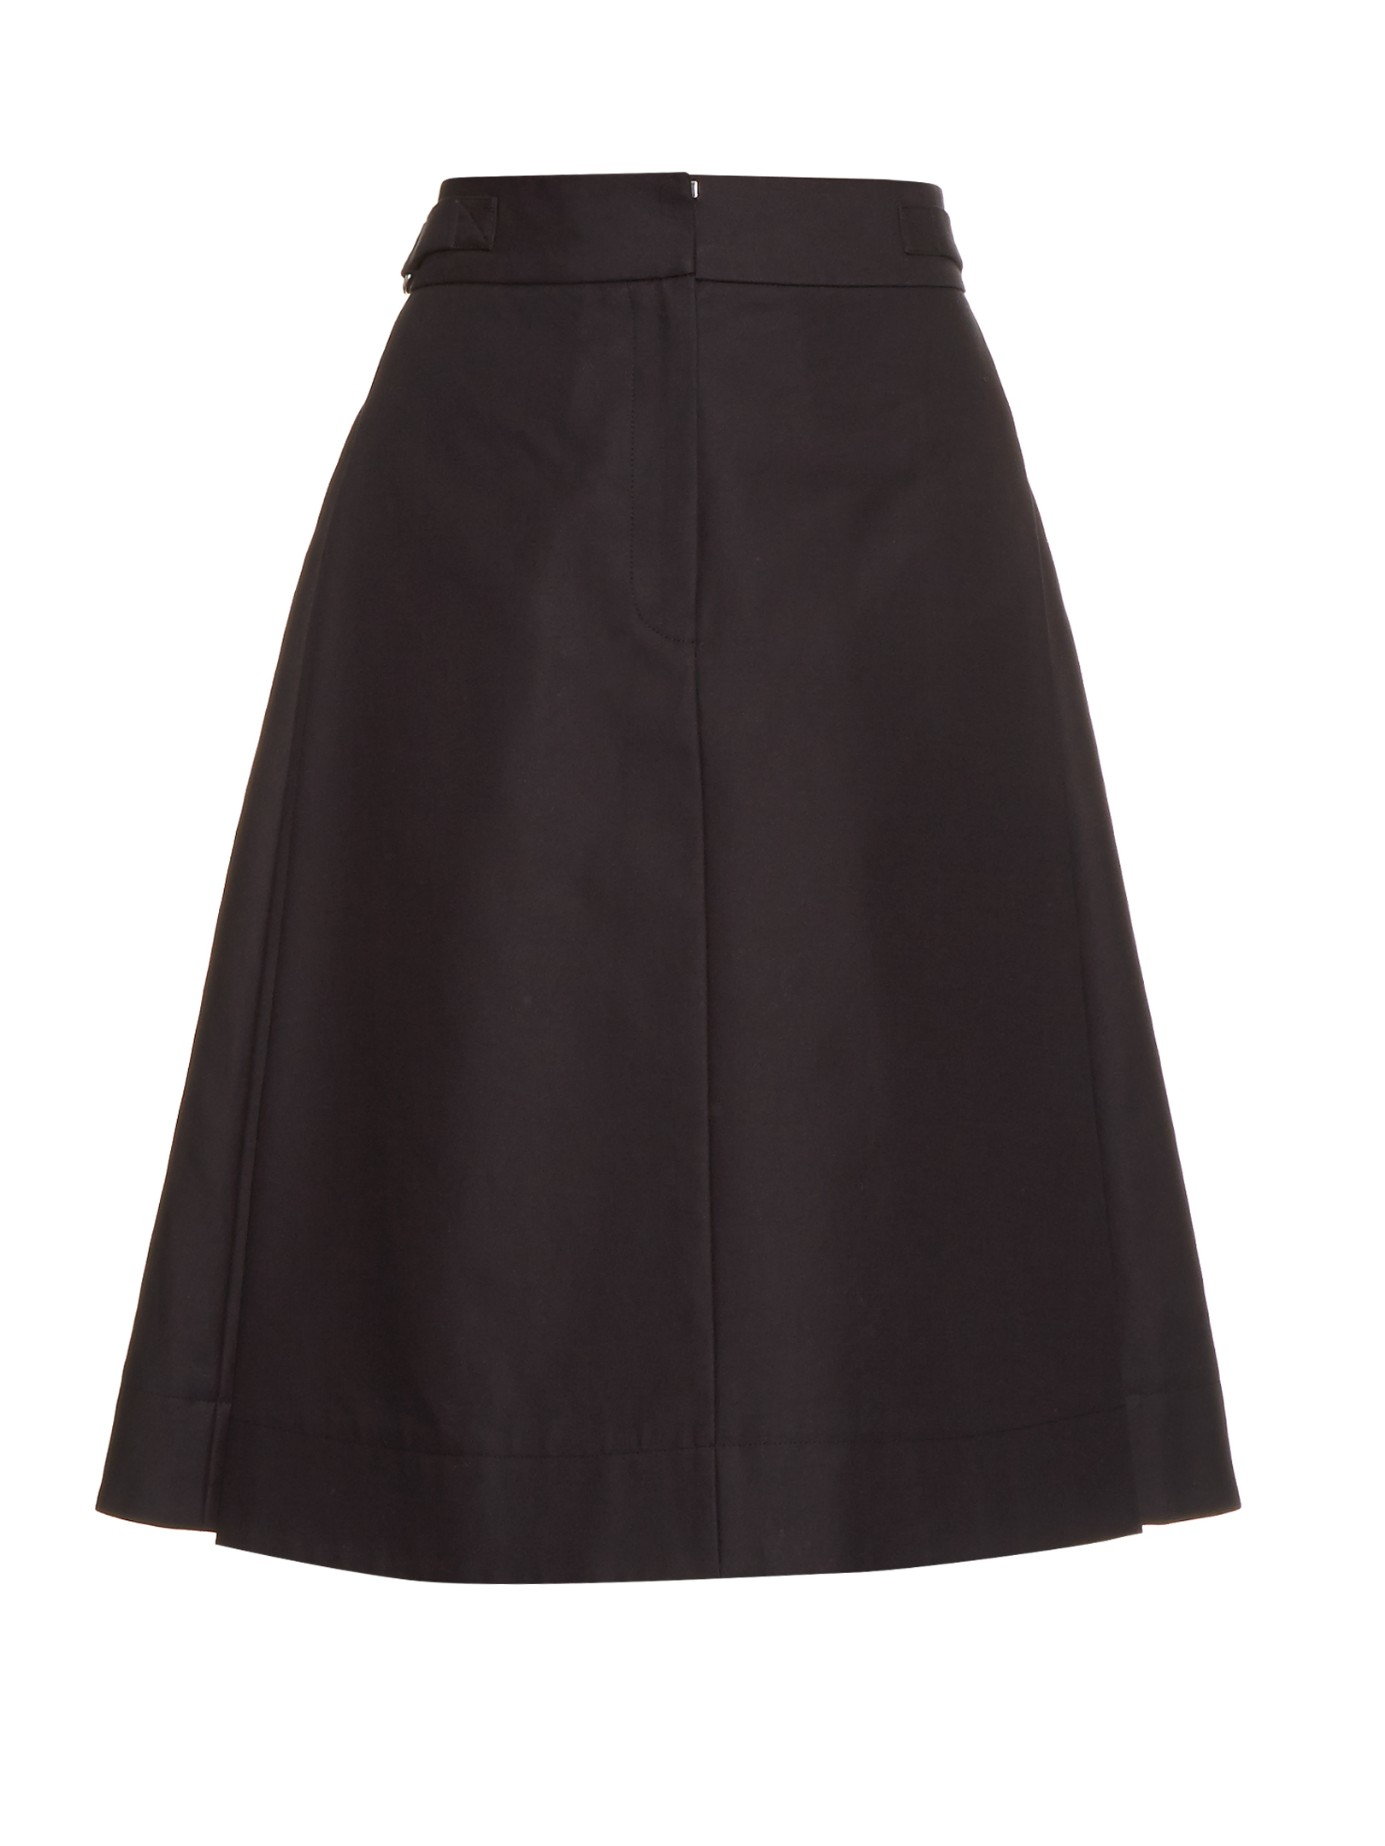 Alexander wang High-waisted A-line Skirt in Black | Lyst